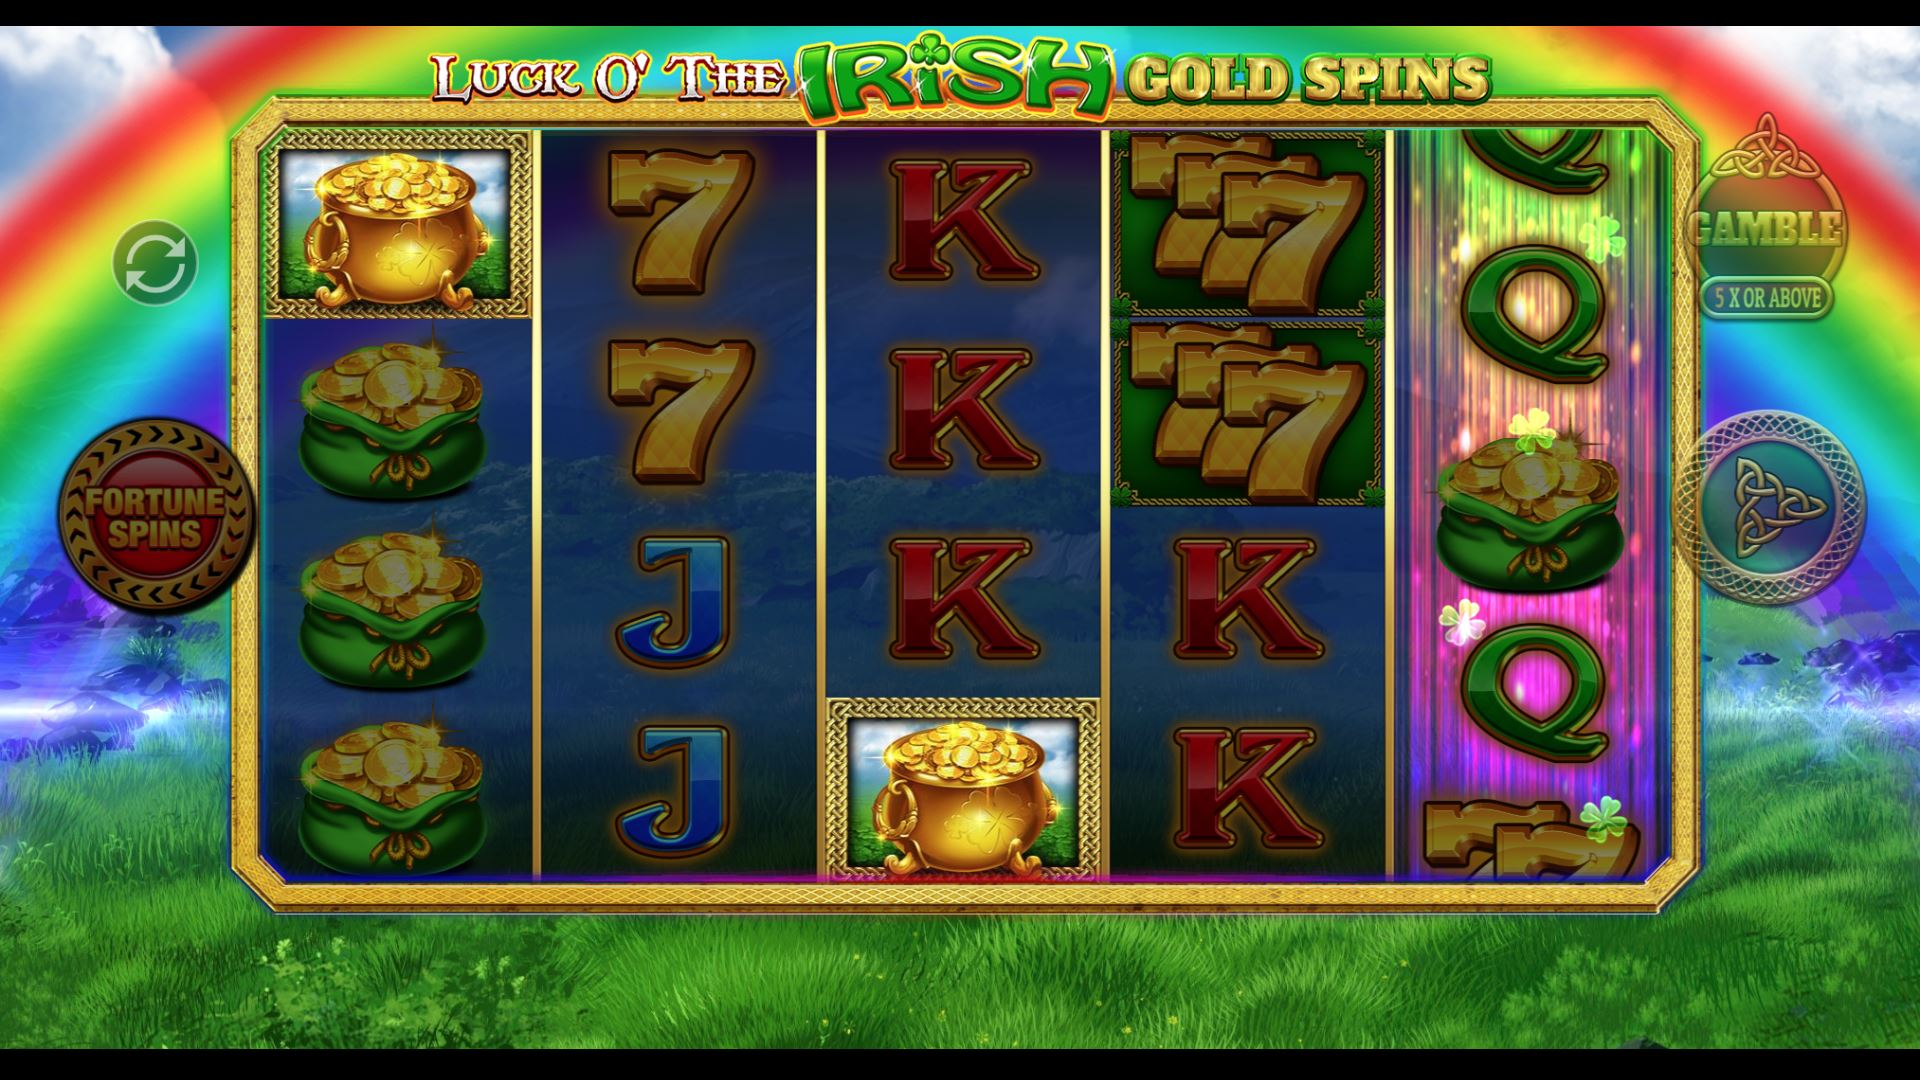 LOTI GOLD SPINS